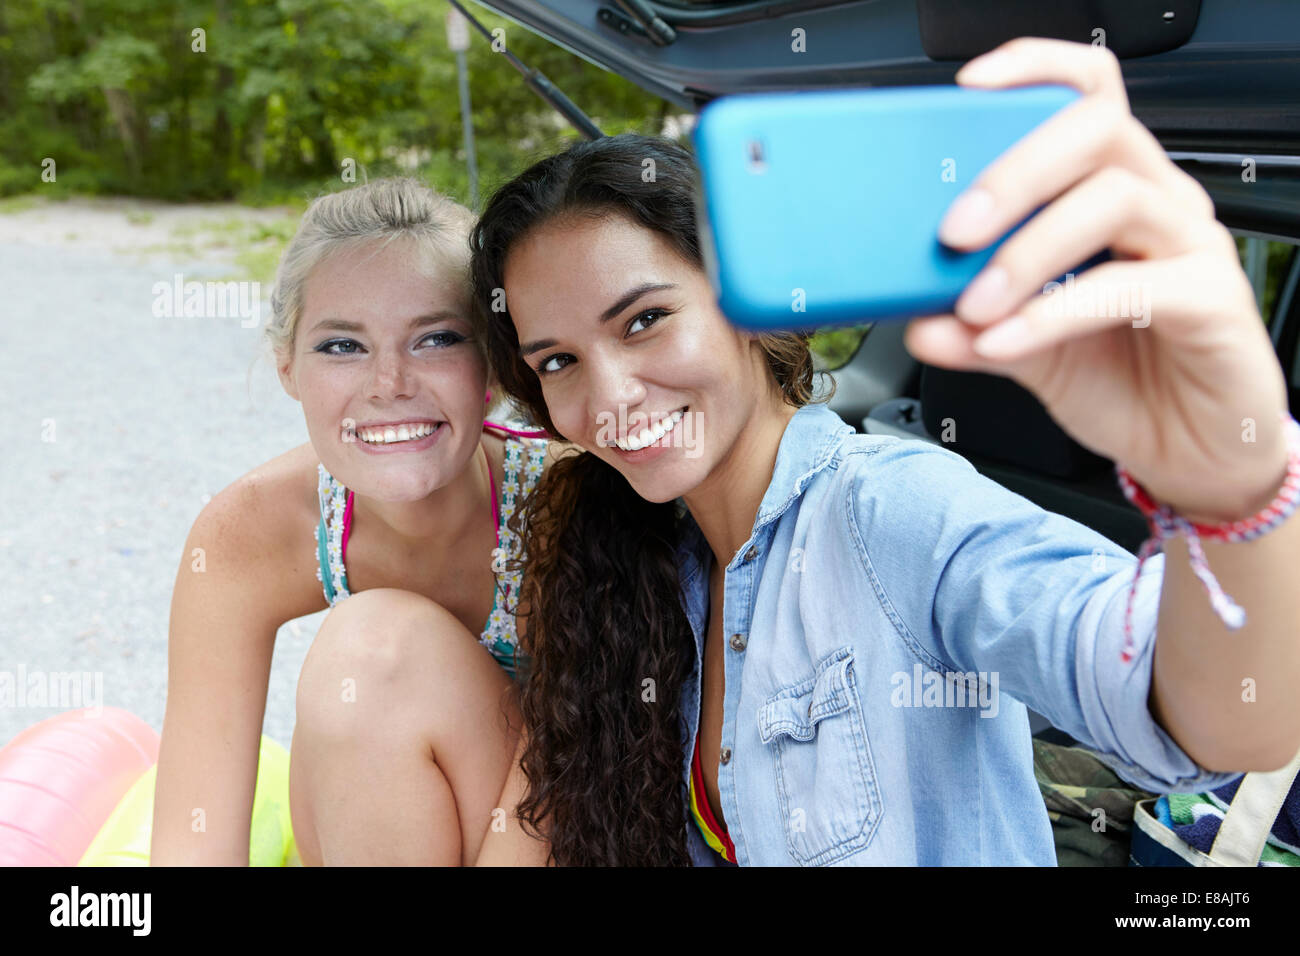 Hikers sitting at rear of car taking selfie - Stock Image